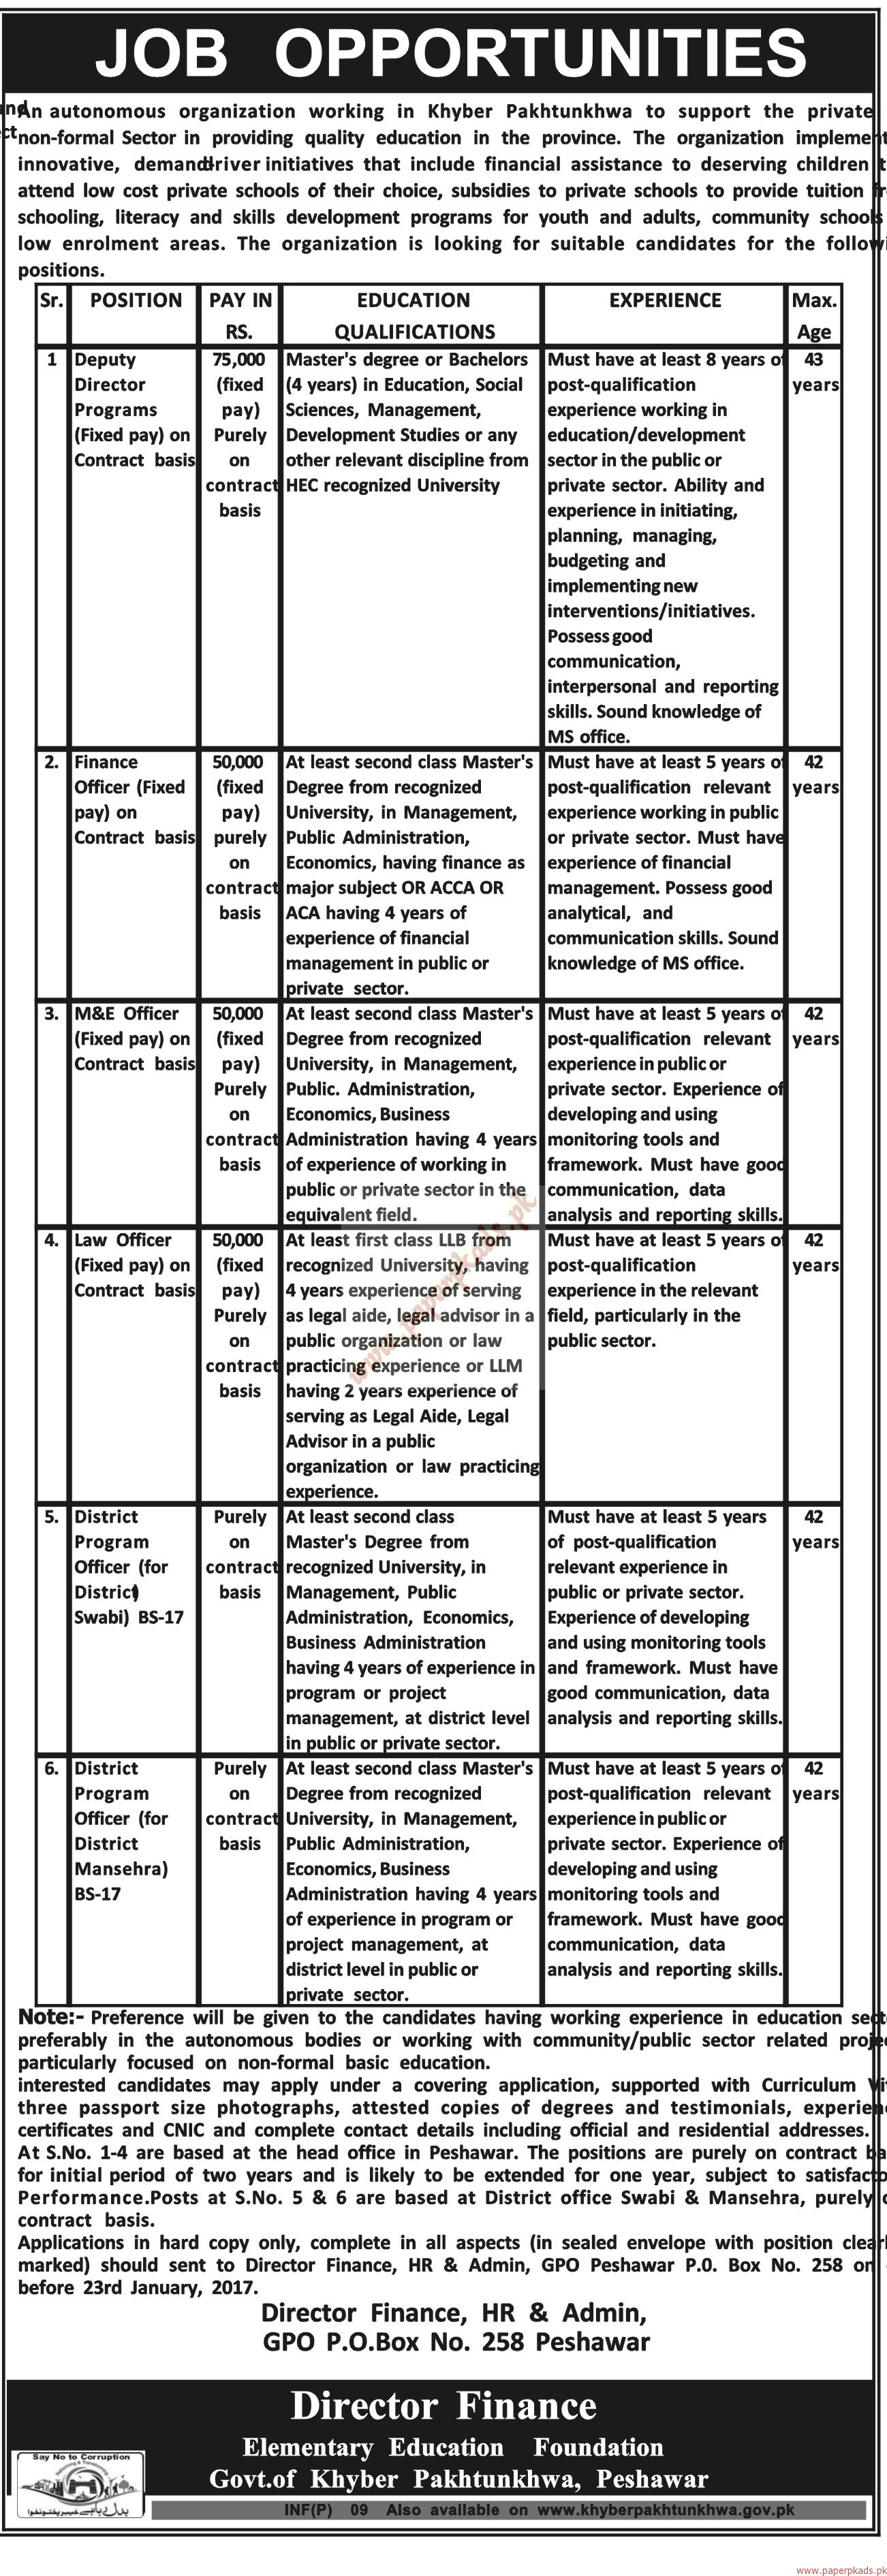 Autonomous Organization Jobs - Mashriq Jobs ads 04 January 2017